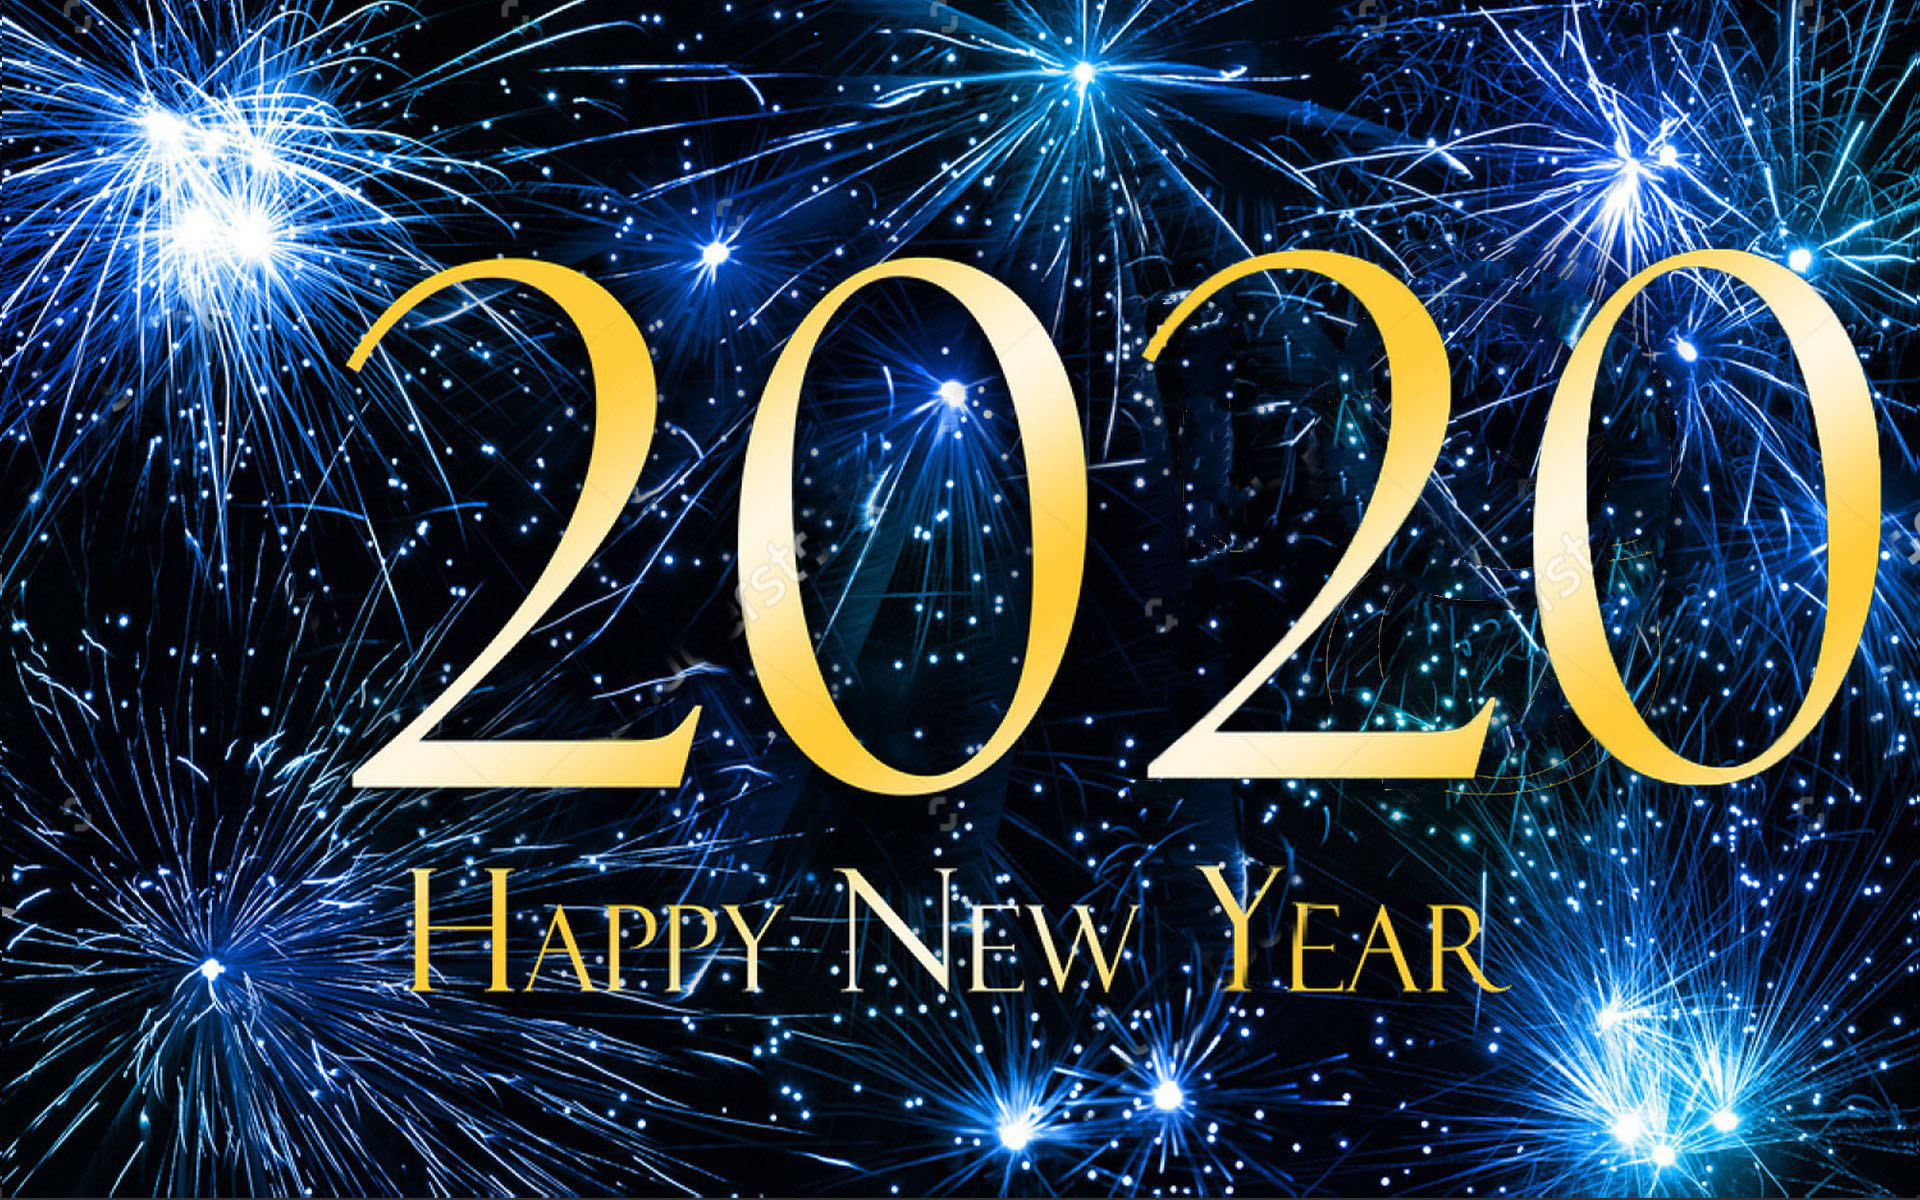 Happy New Year 2020 Blue Hd Wallpaper For Laptop And Tablet 1920x1200